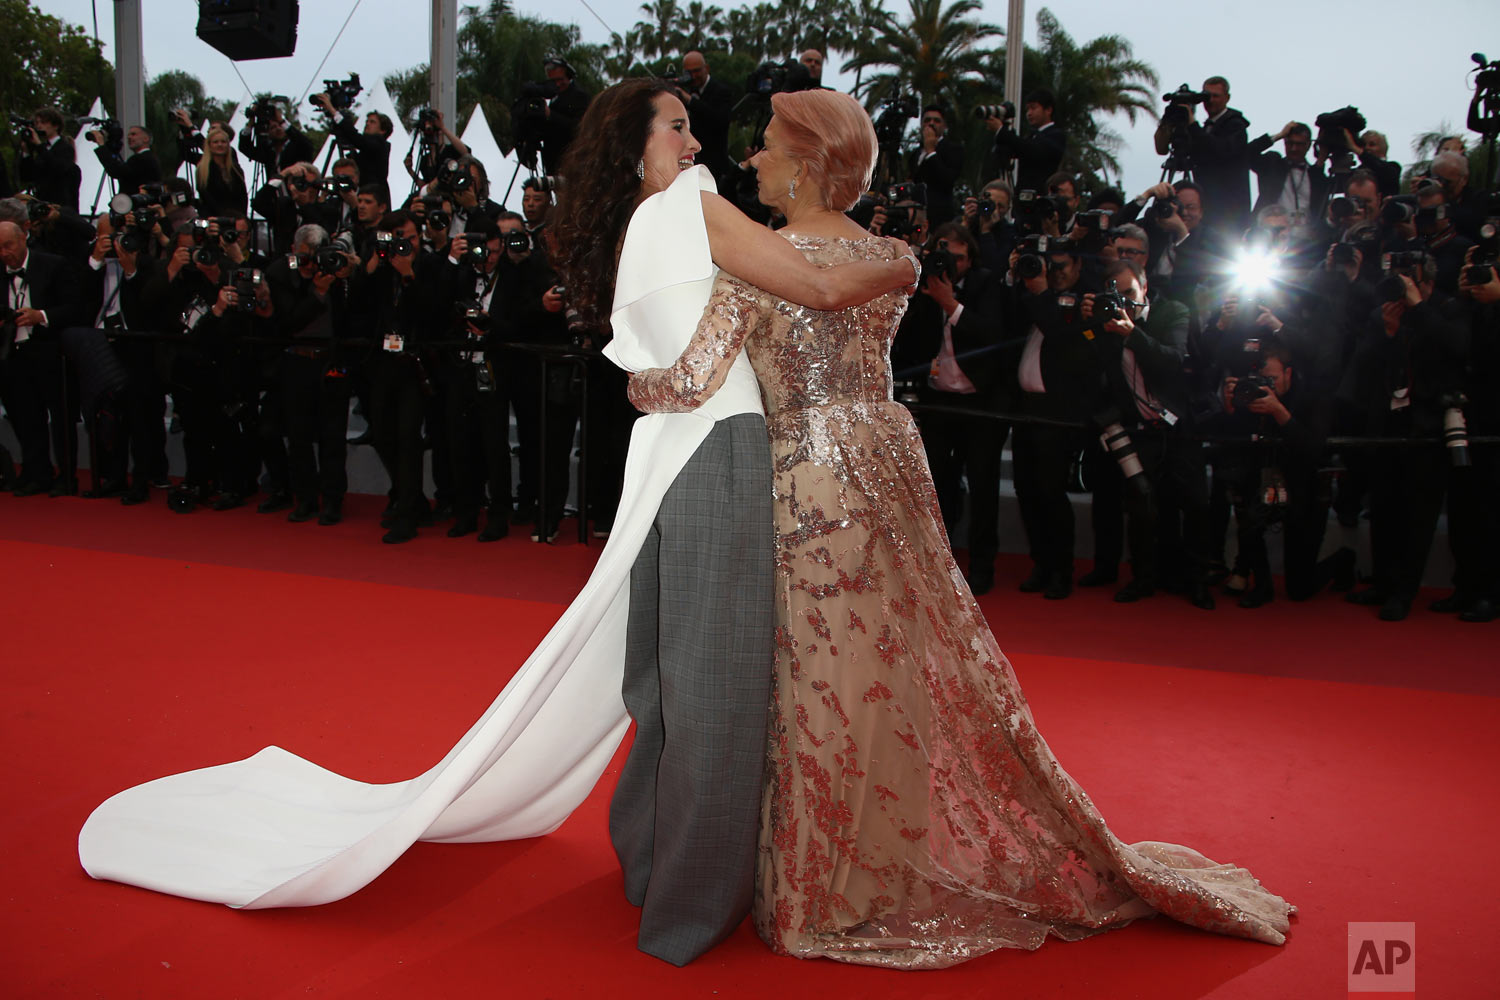 Actresses Andie MacDowell, left, and Helen Mirren pose for photographers upon arrival at the premiere of the film 'The Best Years of a Life' at the 72nd international film festival, Cannes, southern France, May 18, 2019. (Photo by Joel C Ryan/Invision/AP)